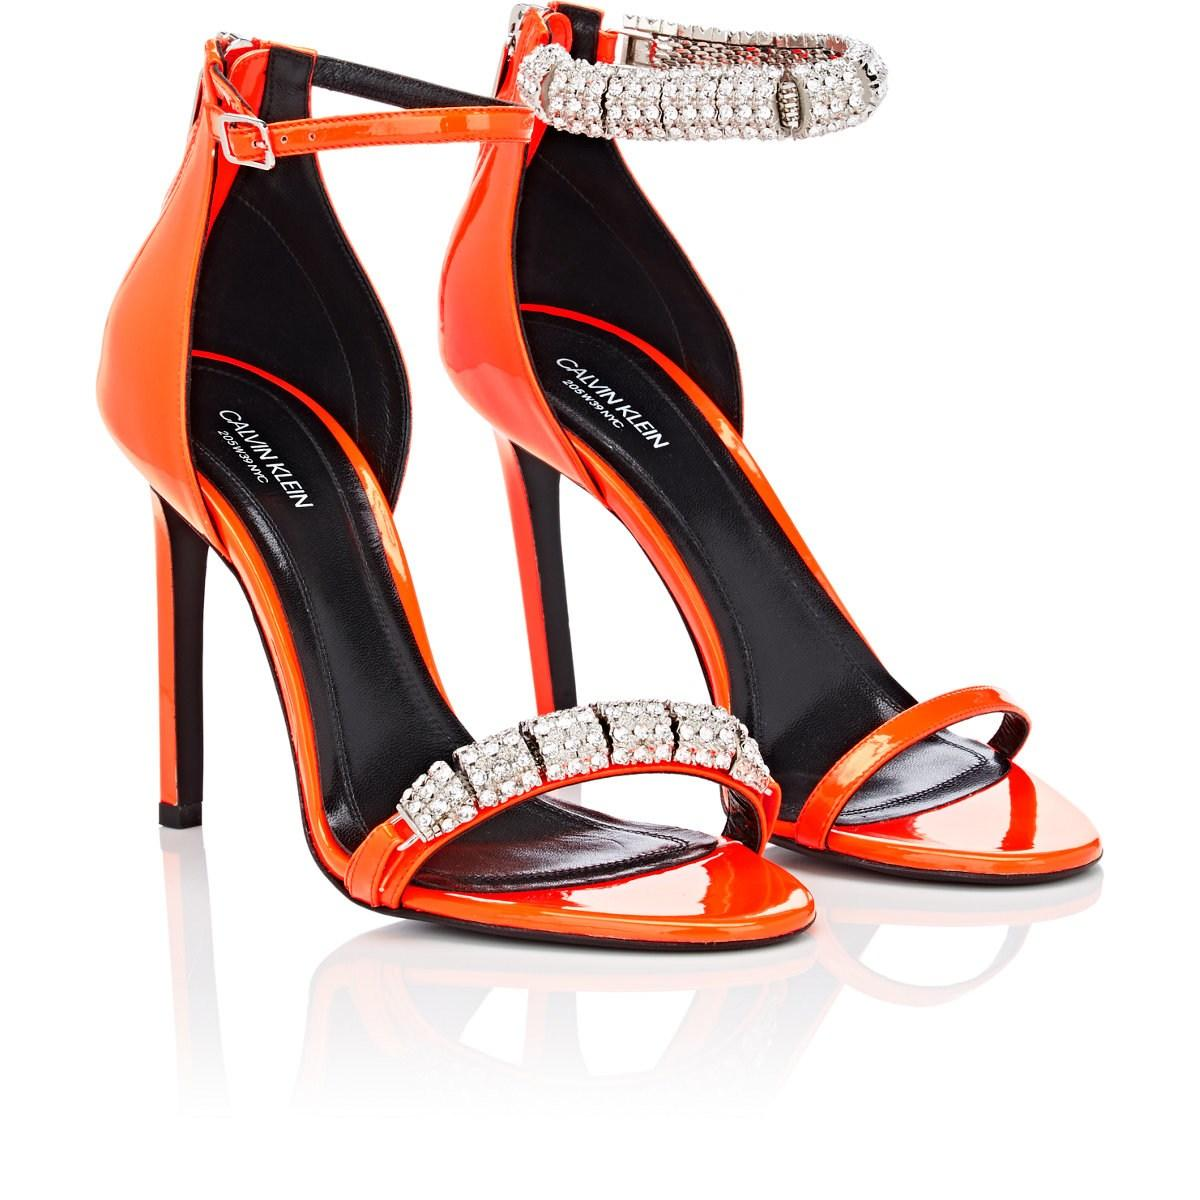 d3b749603acb4d CALVIN KLEIN 205W39NYC - Orange Camelle Patent Leather Sandals - Lyst. View  fullscreen